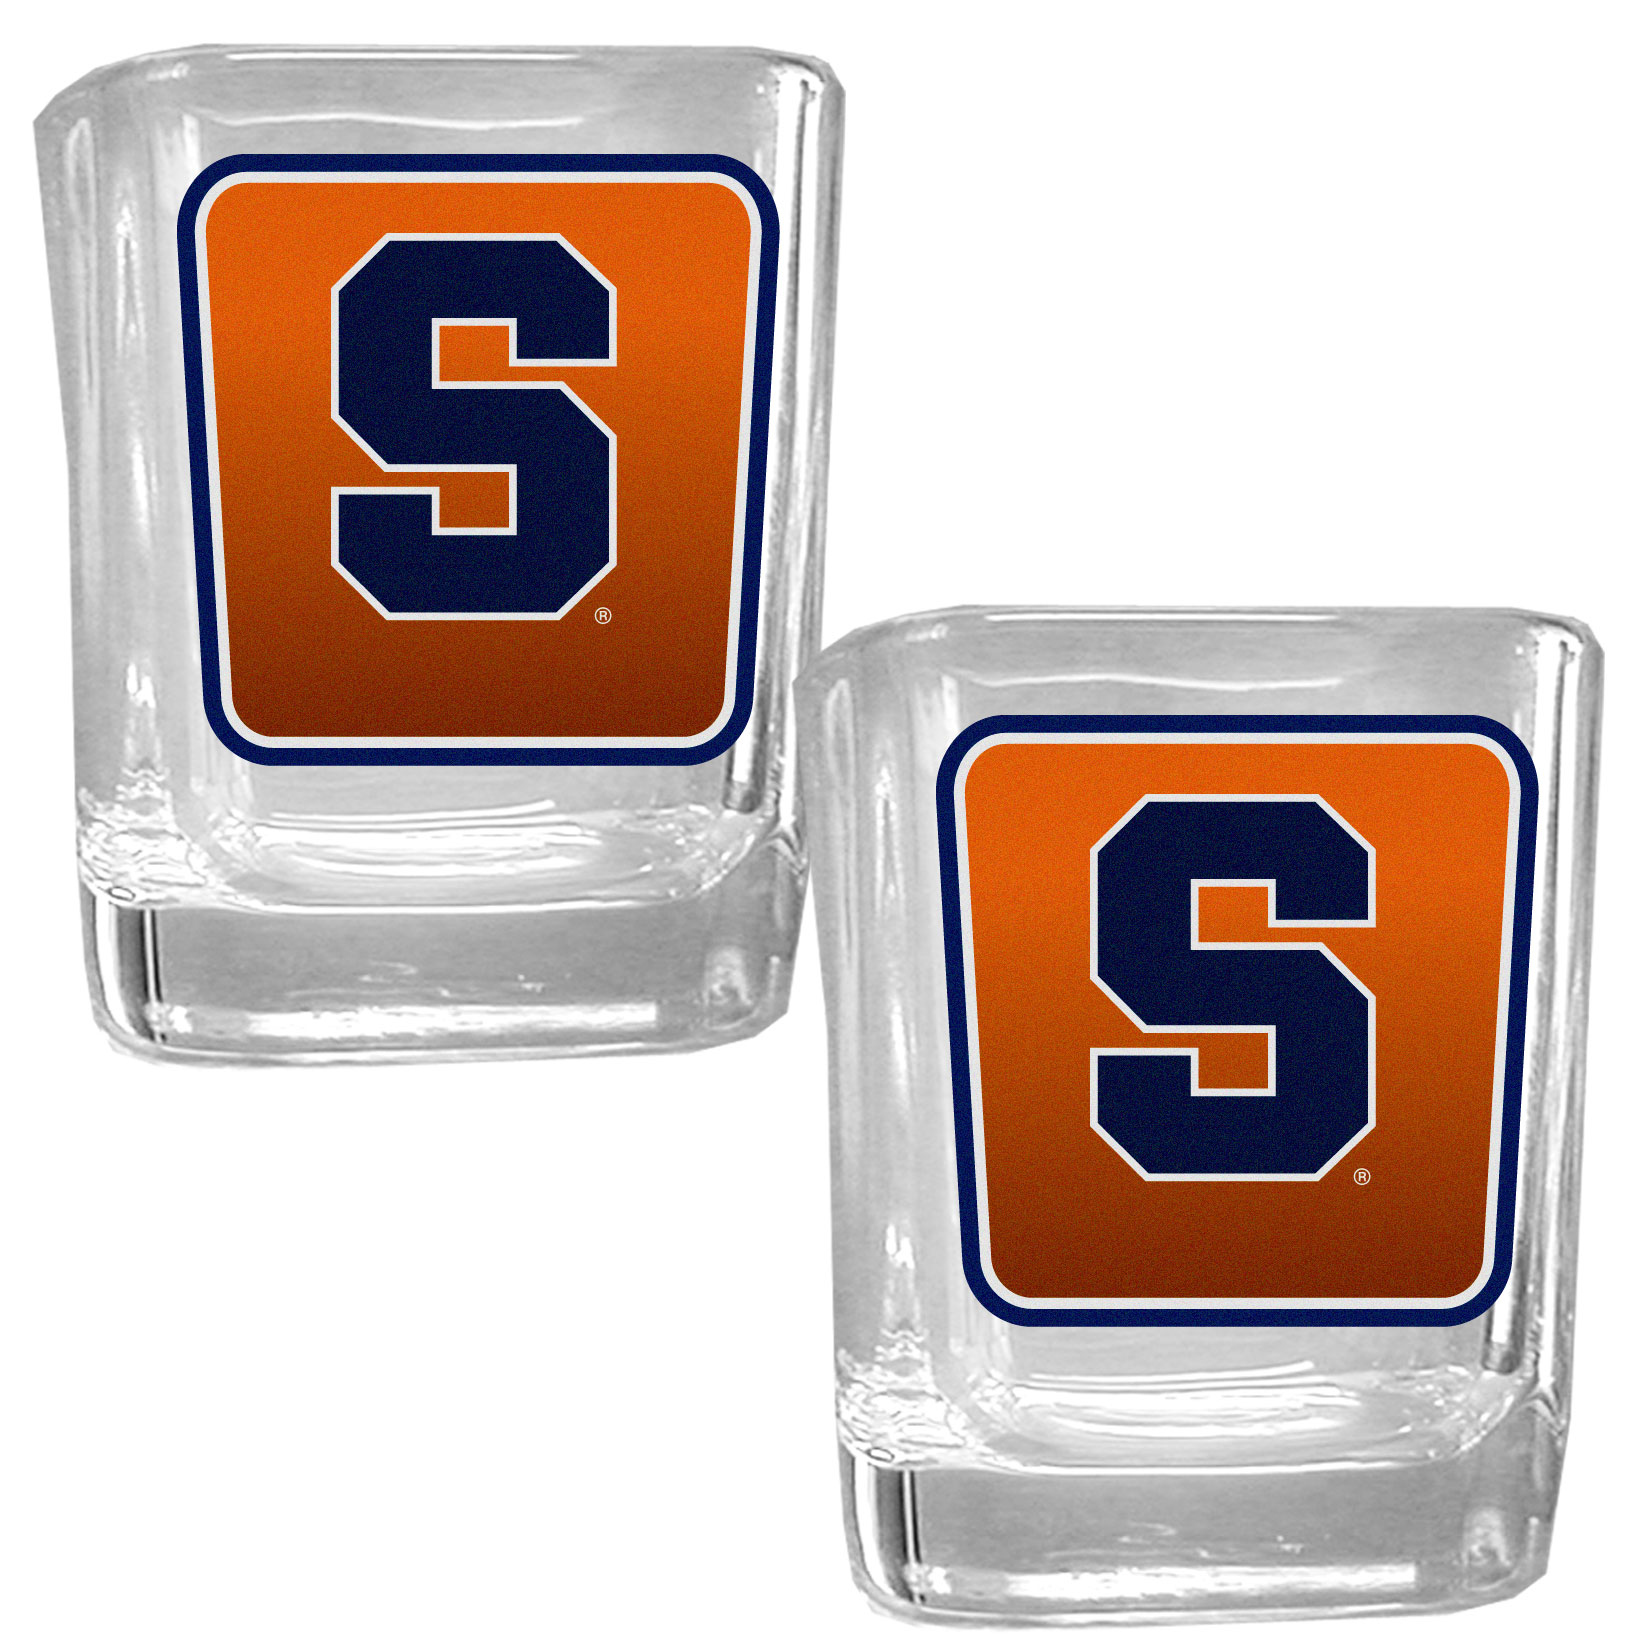 Syracuse Orange Square Glass Shot Glass Set - Our glass shot glasses are perfect for collectors or any game day event. The 2 ounce glasses feature bright, vidid digital Syracuse Orange graphics. Comes in a set of 2.